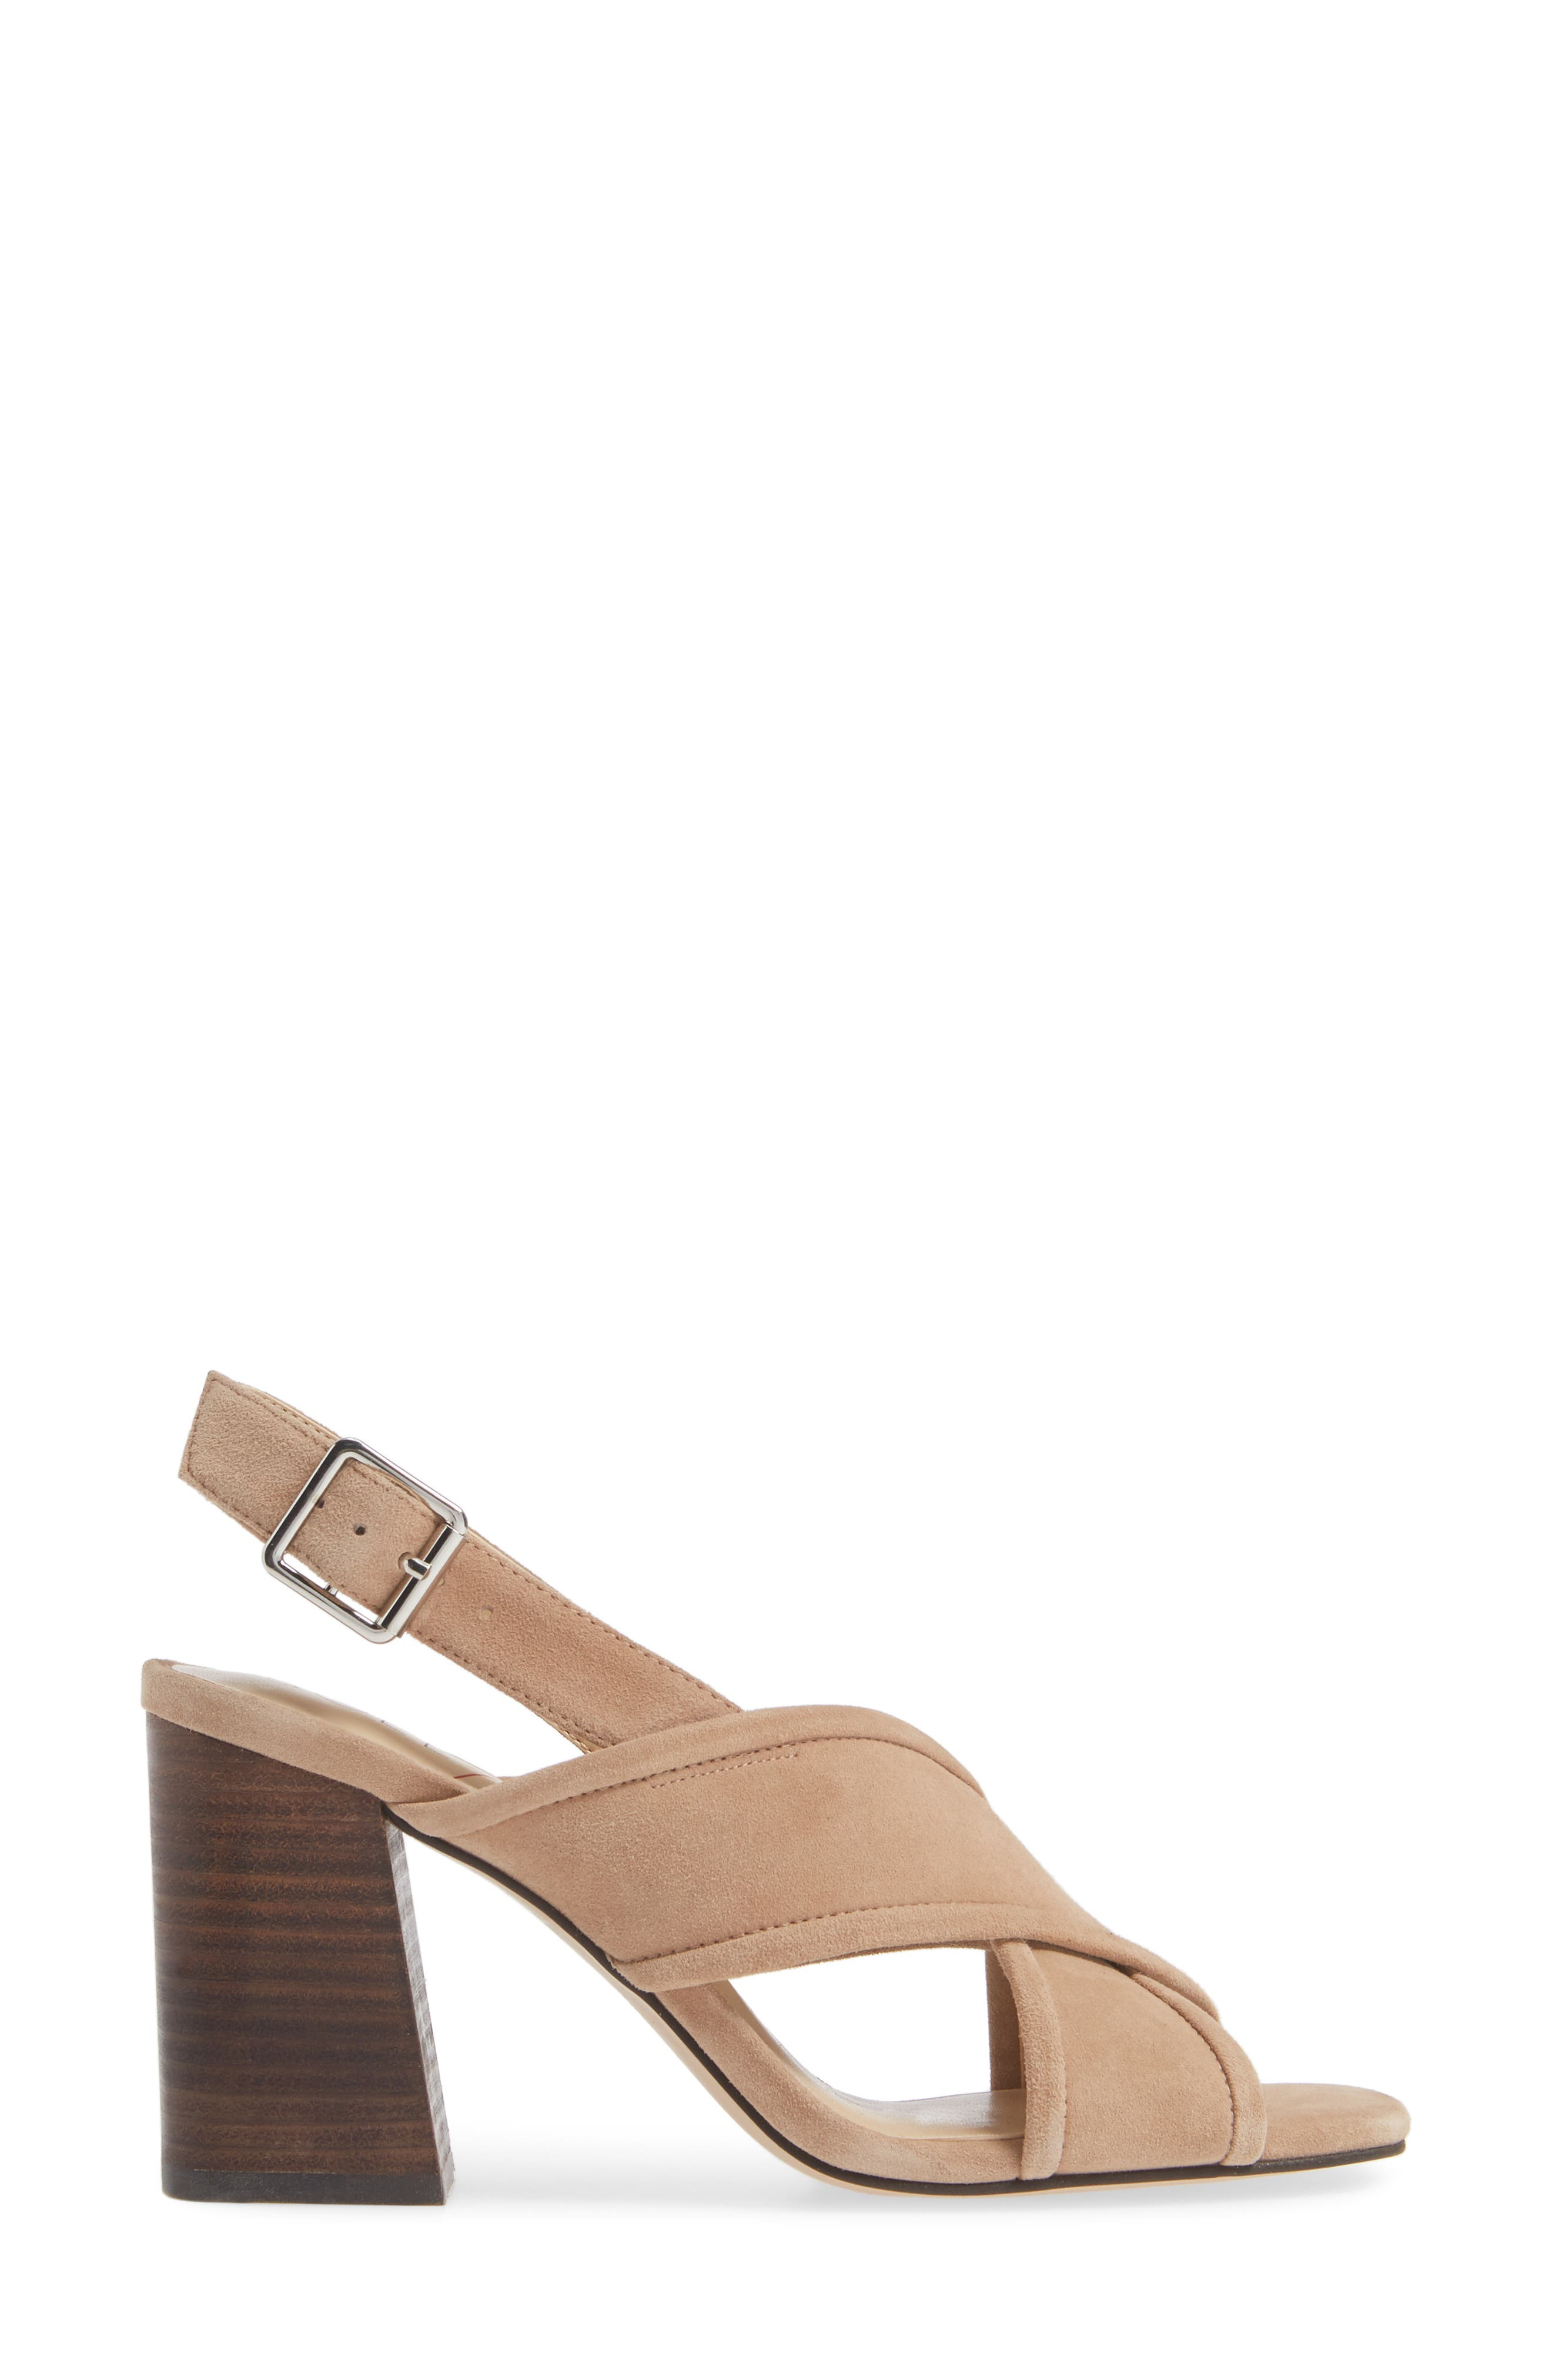 SOLE SOCIETY, Joree Slingback Sandal, Alternate thumbnail 3, color, DUSTED TAUPE SUEDE